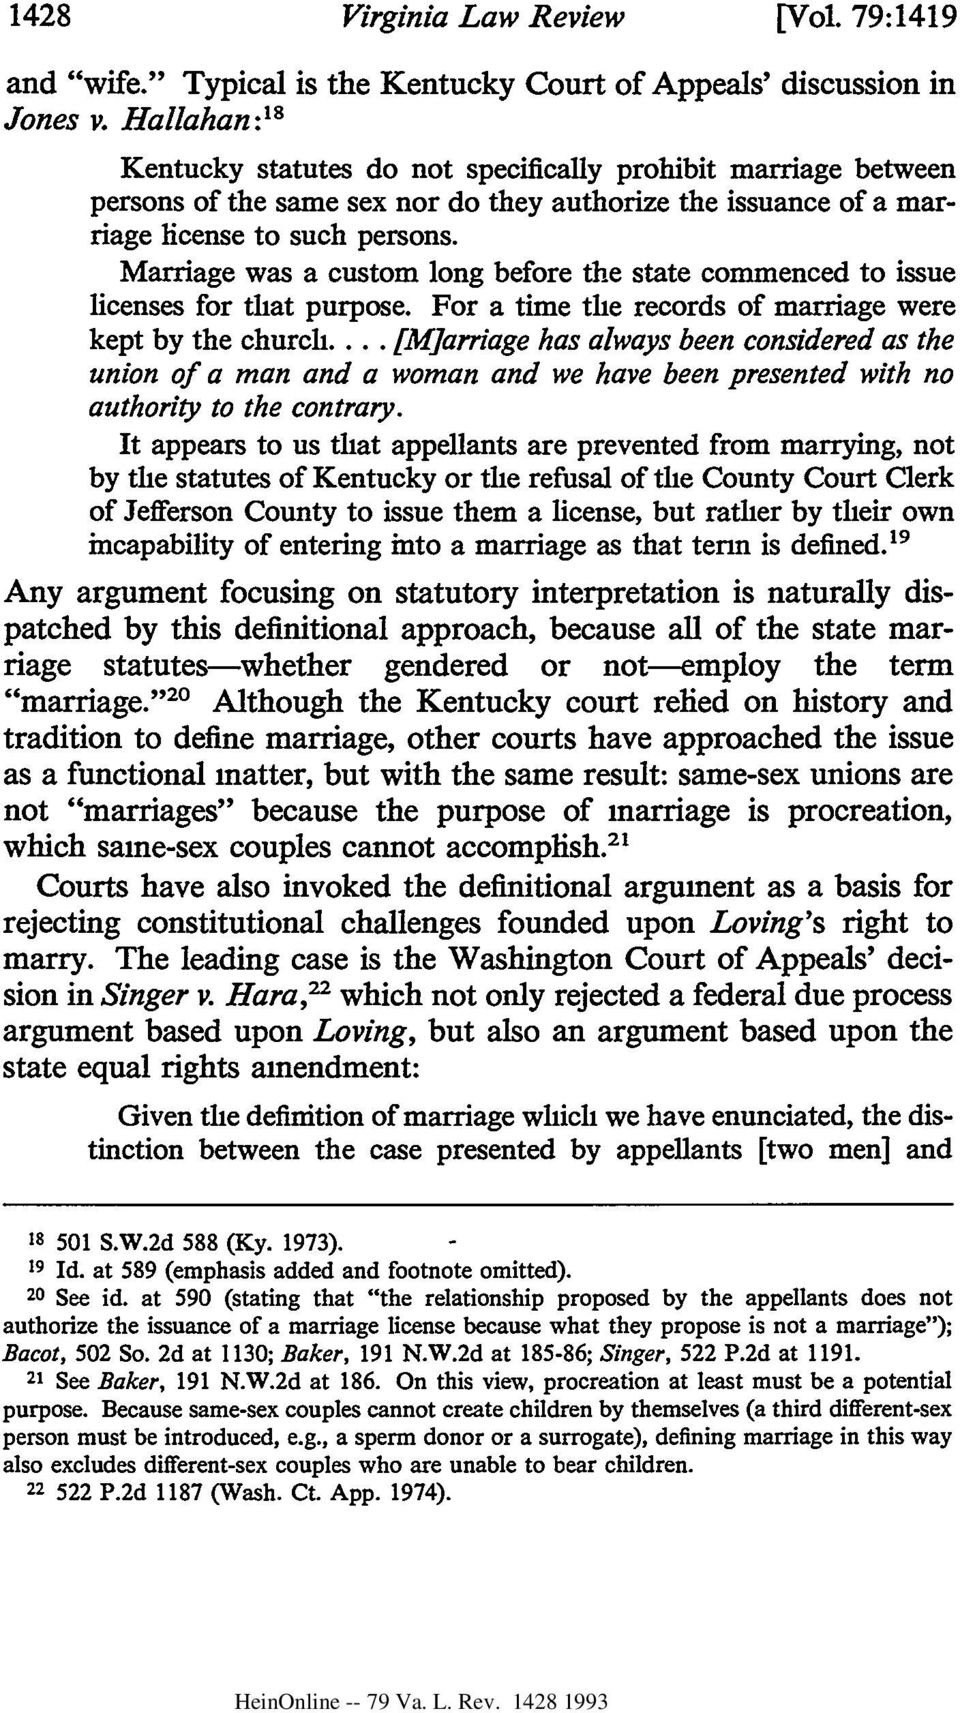 Marriage was a custom long before the state commenced to issue licenses for that purpose. For a time the records of marriage were kept by the church.